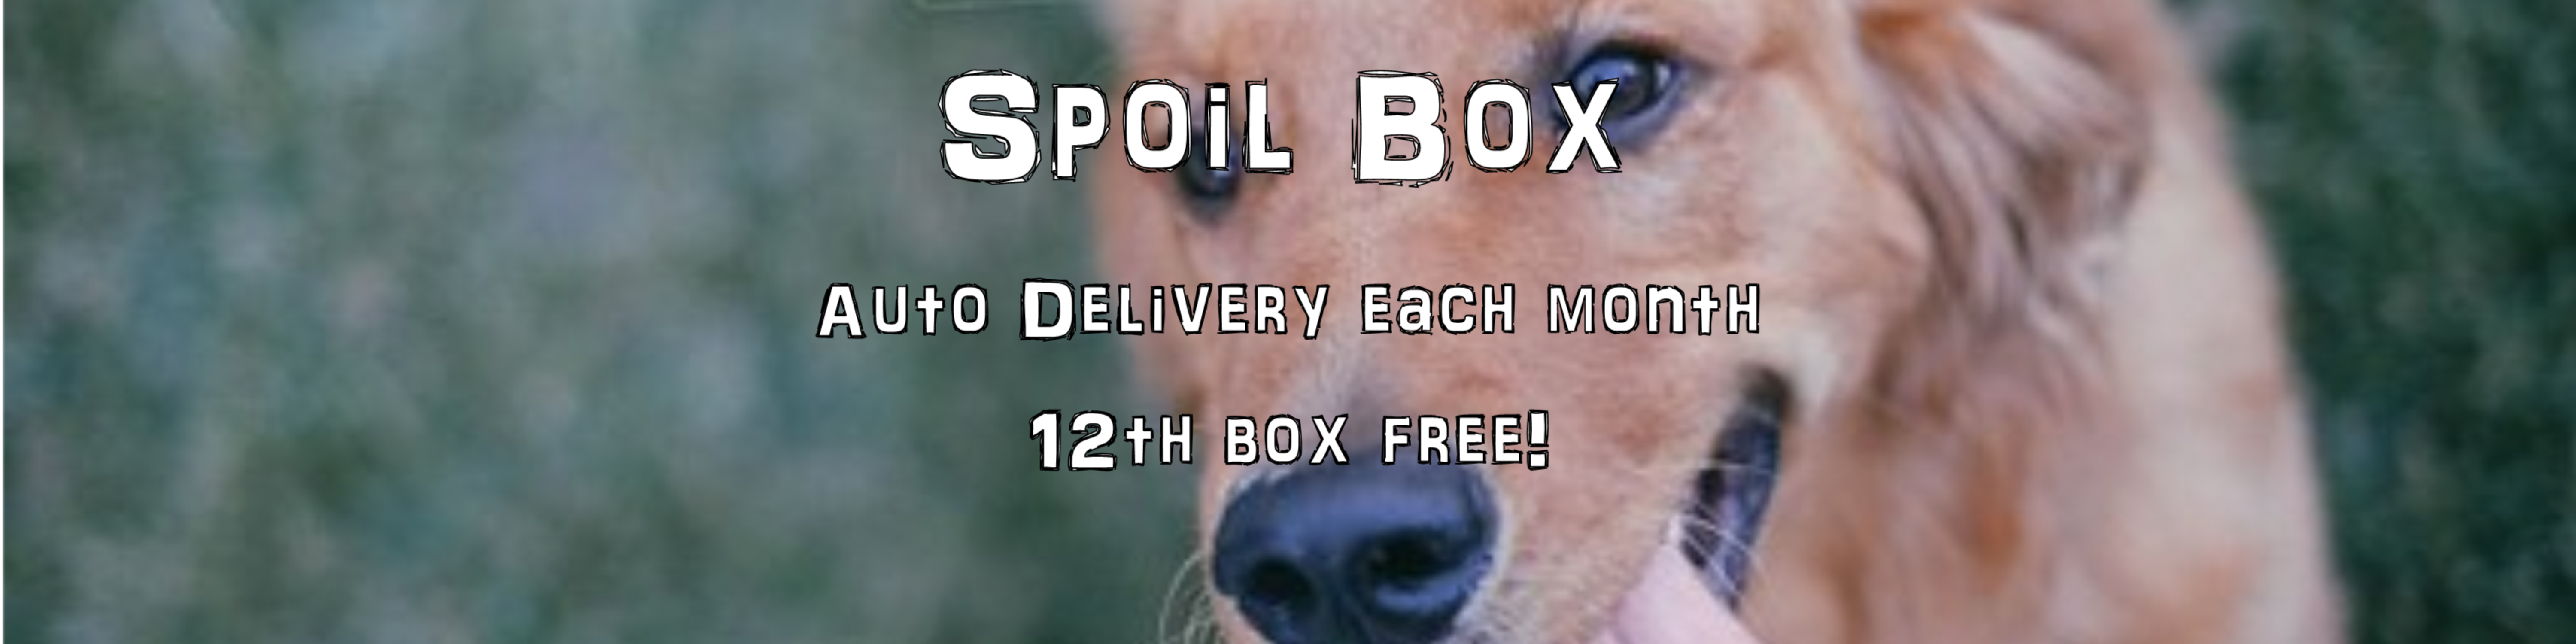 Spoil Box Auto Delivery Blanchards Treats Gibsonville NC 27249